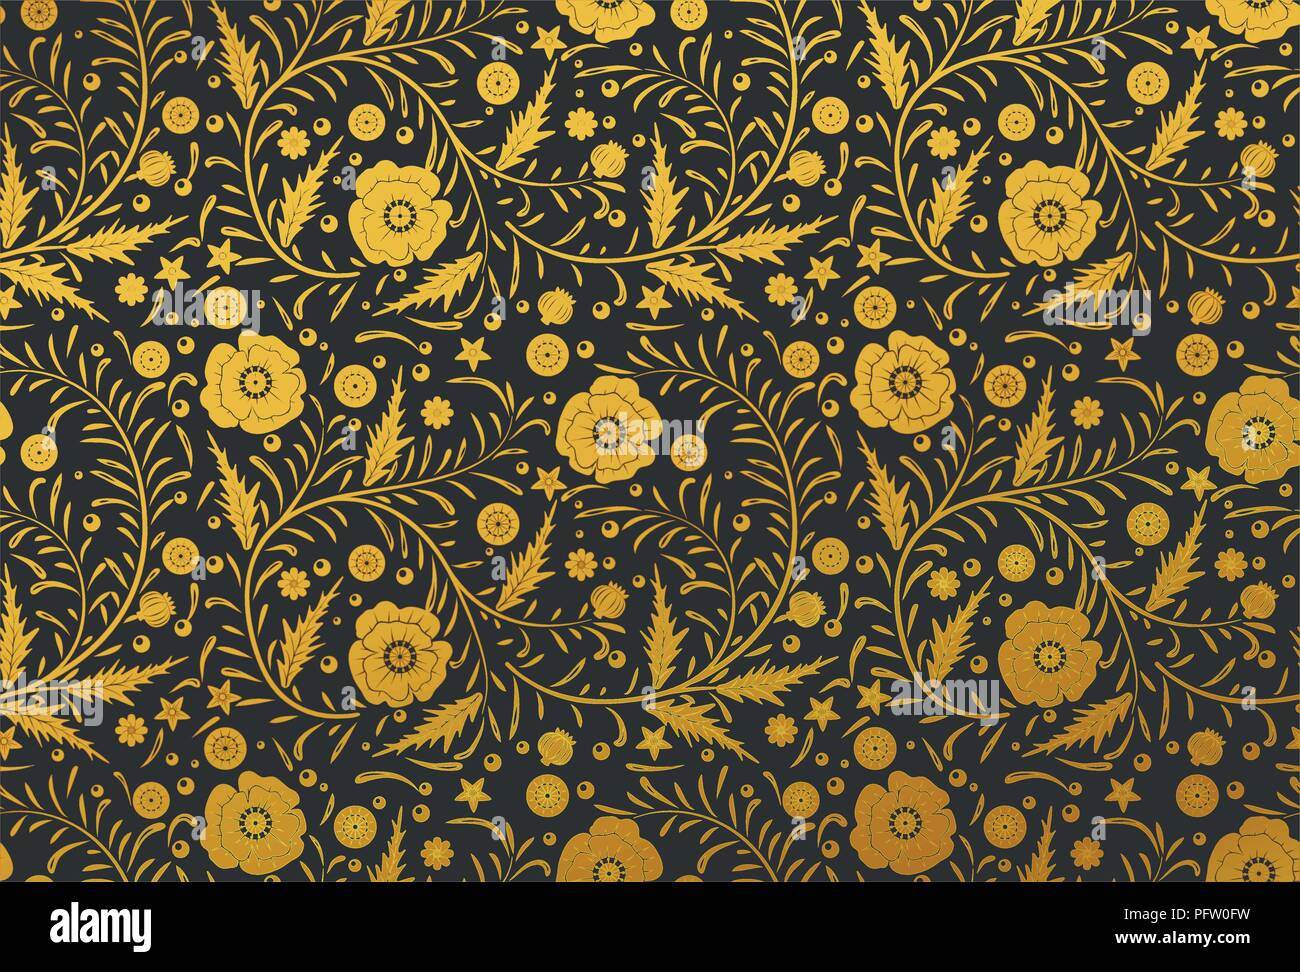 Vector Seamless floral pattern design hand drawn: Perfect Golden poppies with vintage leaves on a black background - Stock Vector